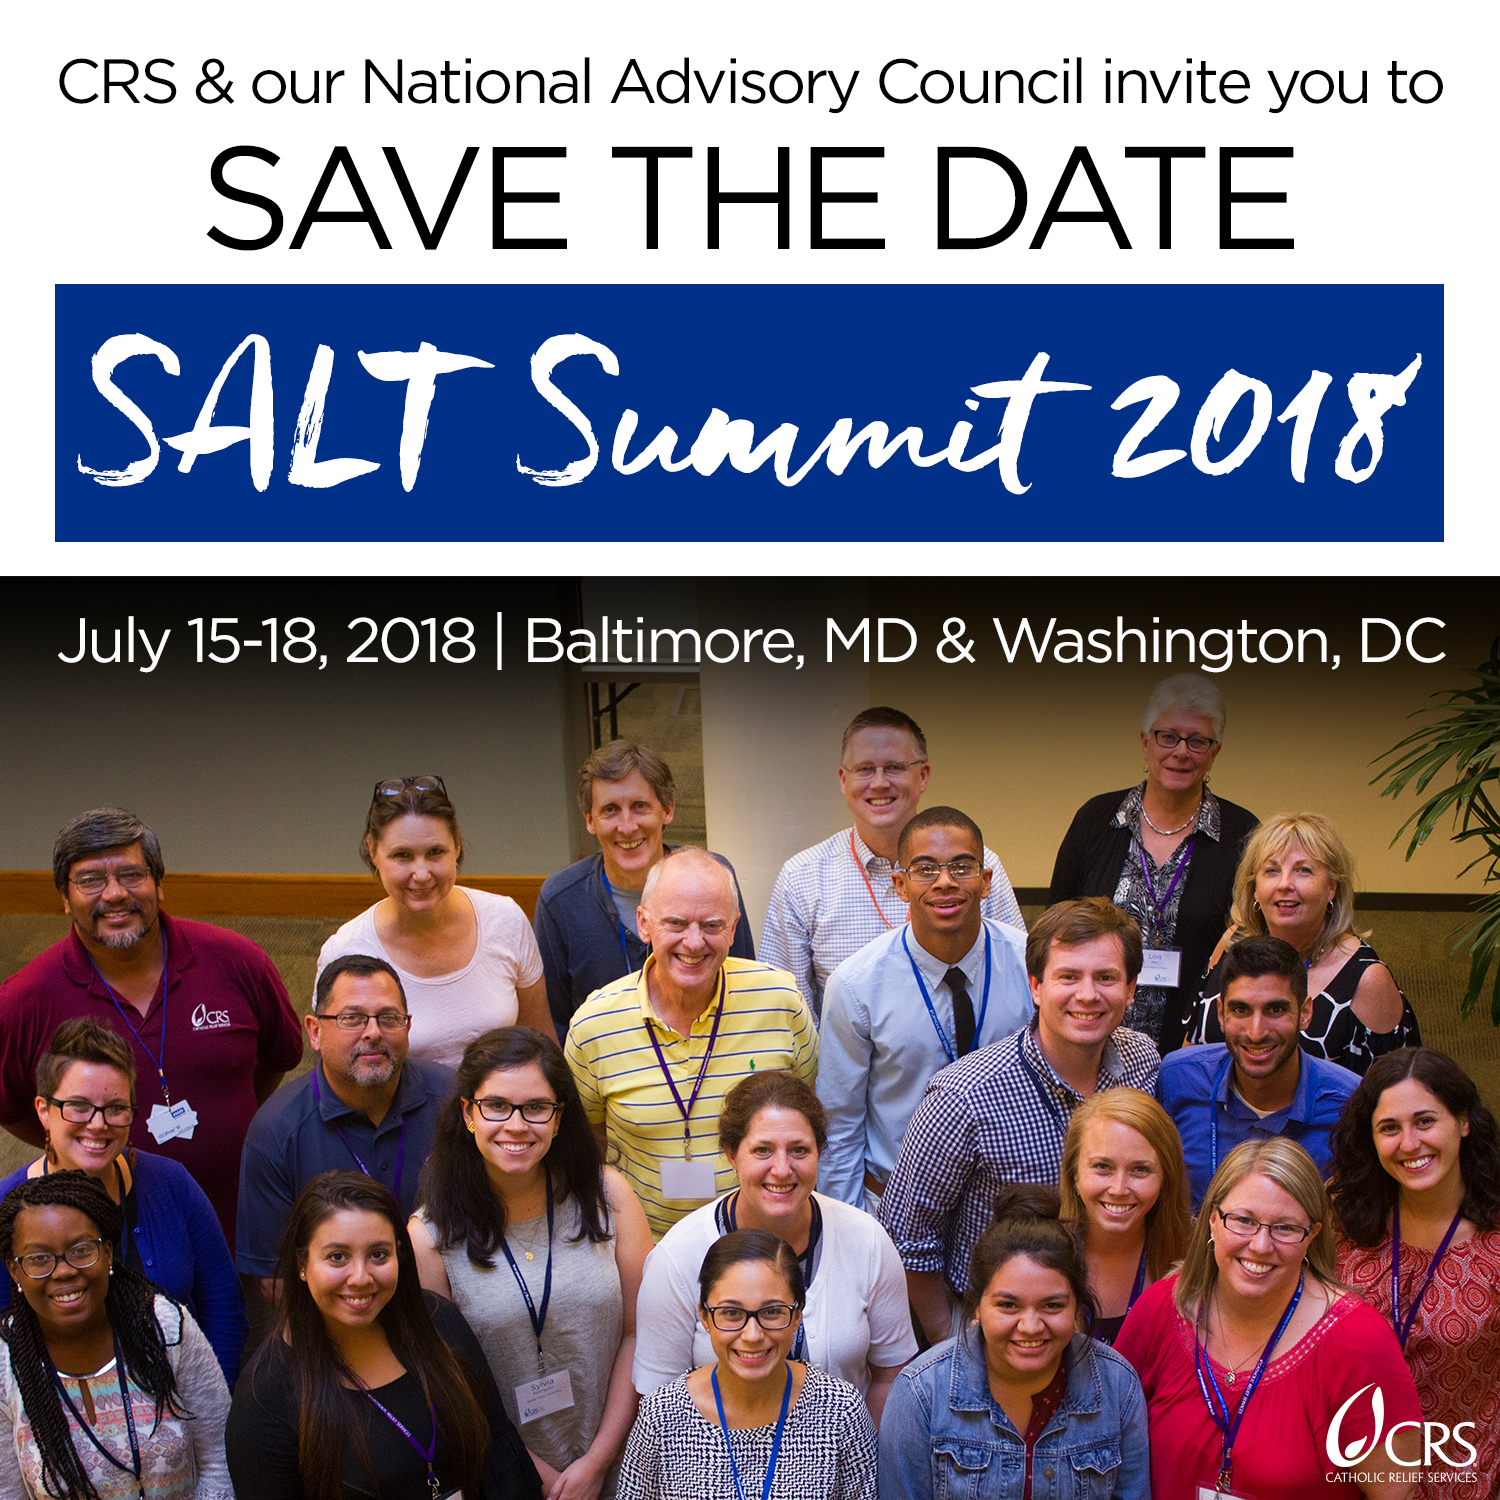 SALT Summit Save the Date